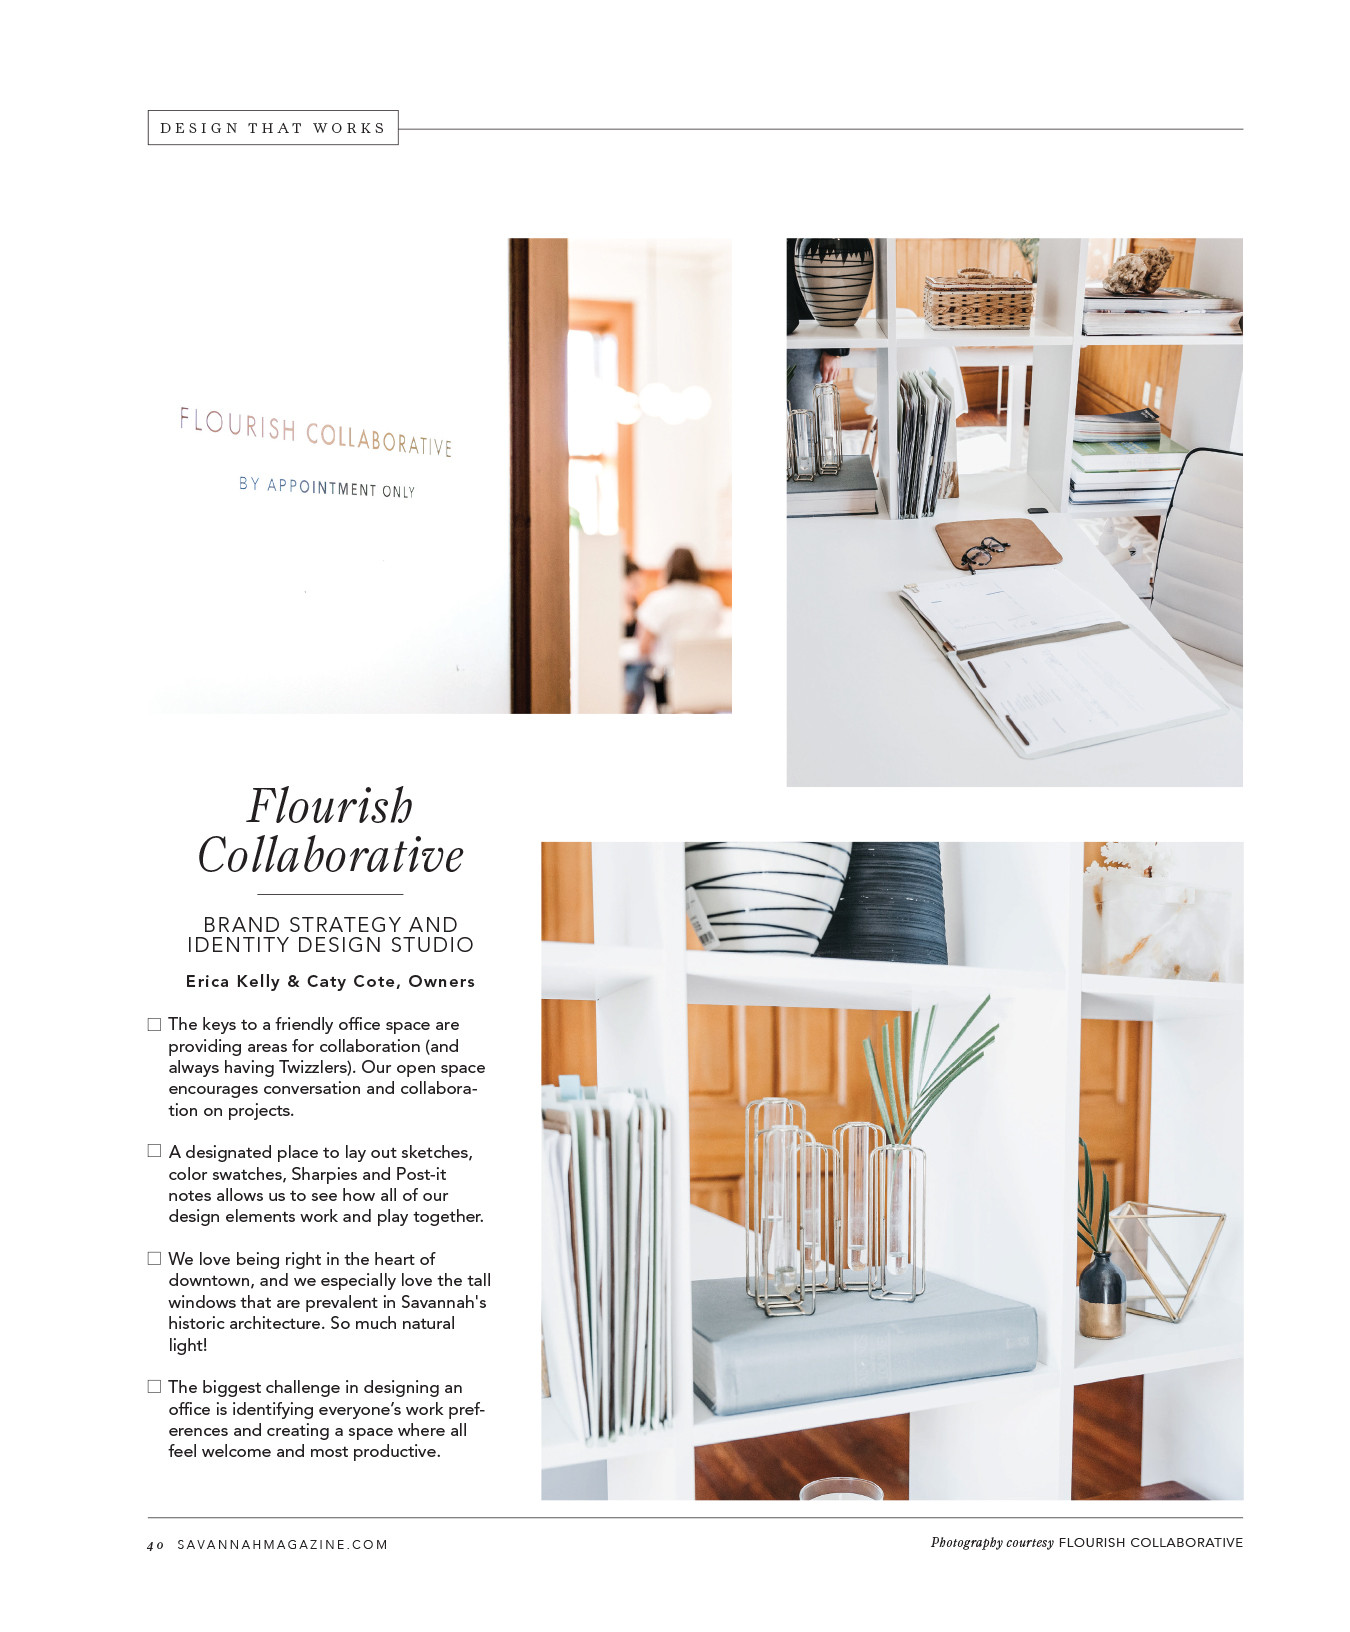 Flourish-Collaborative-Savannah-Magazine-Homes-Spring-2019-page2.jpg